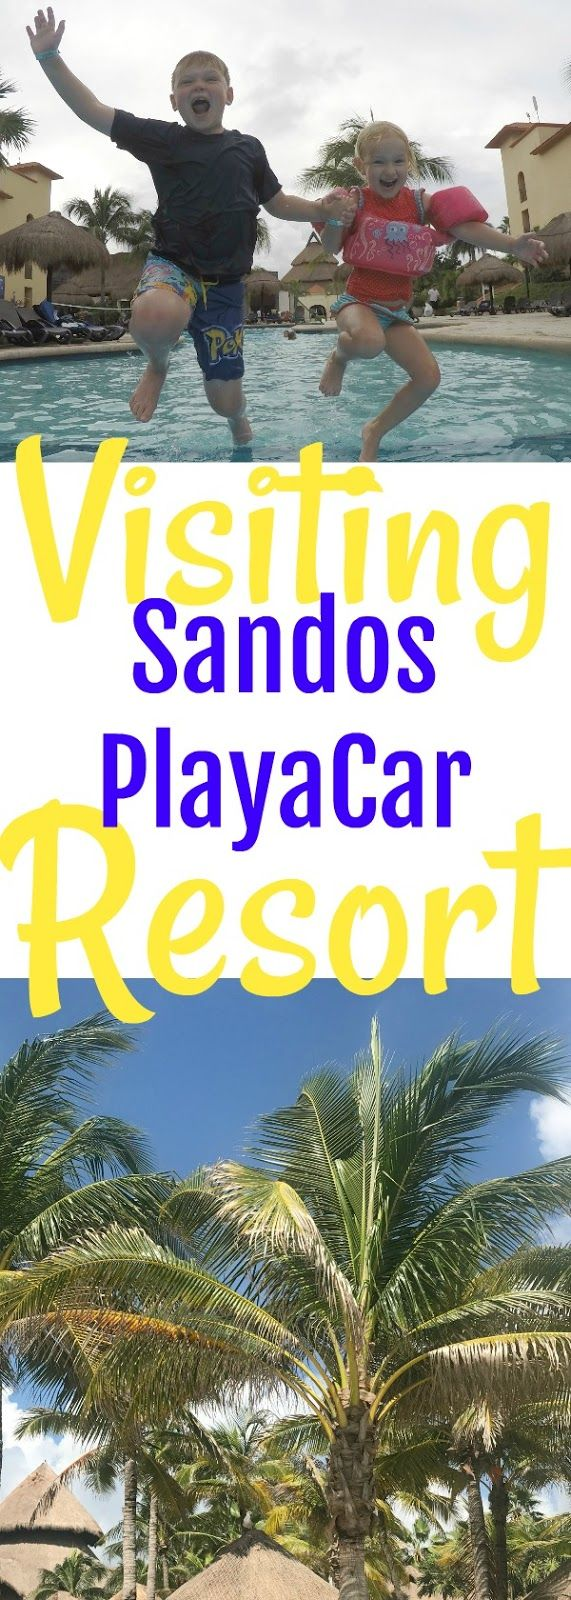 Visiting Sandos Playacar Resort. Inclusive ResortsBeach ...